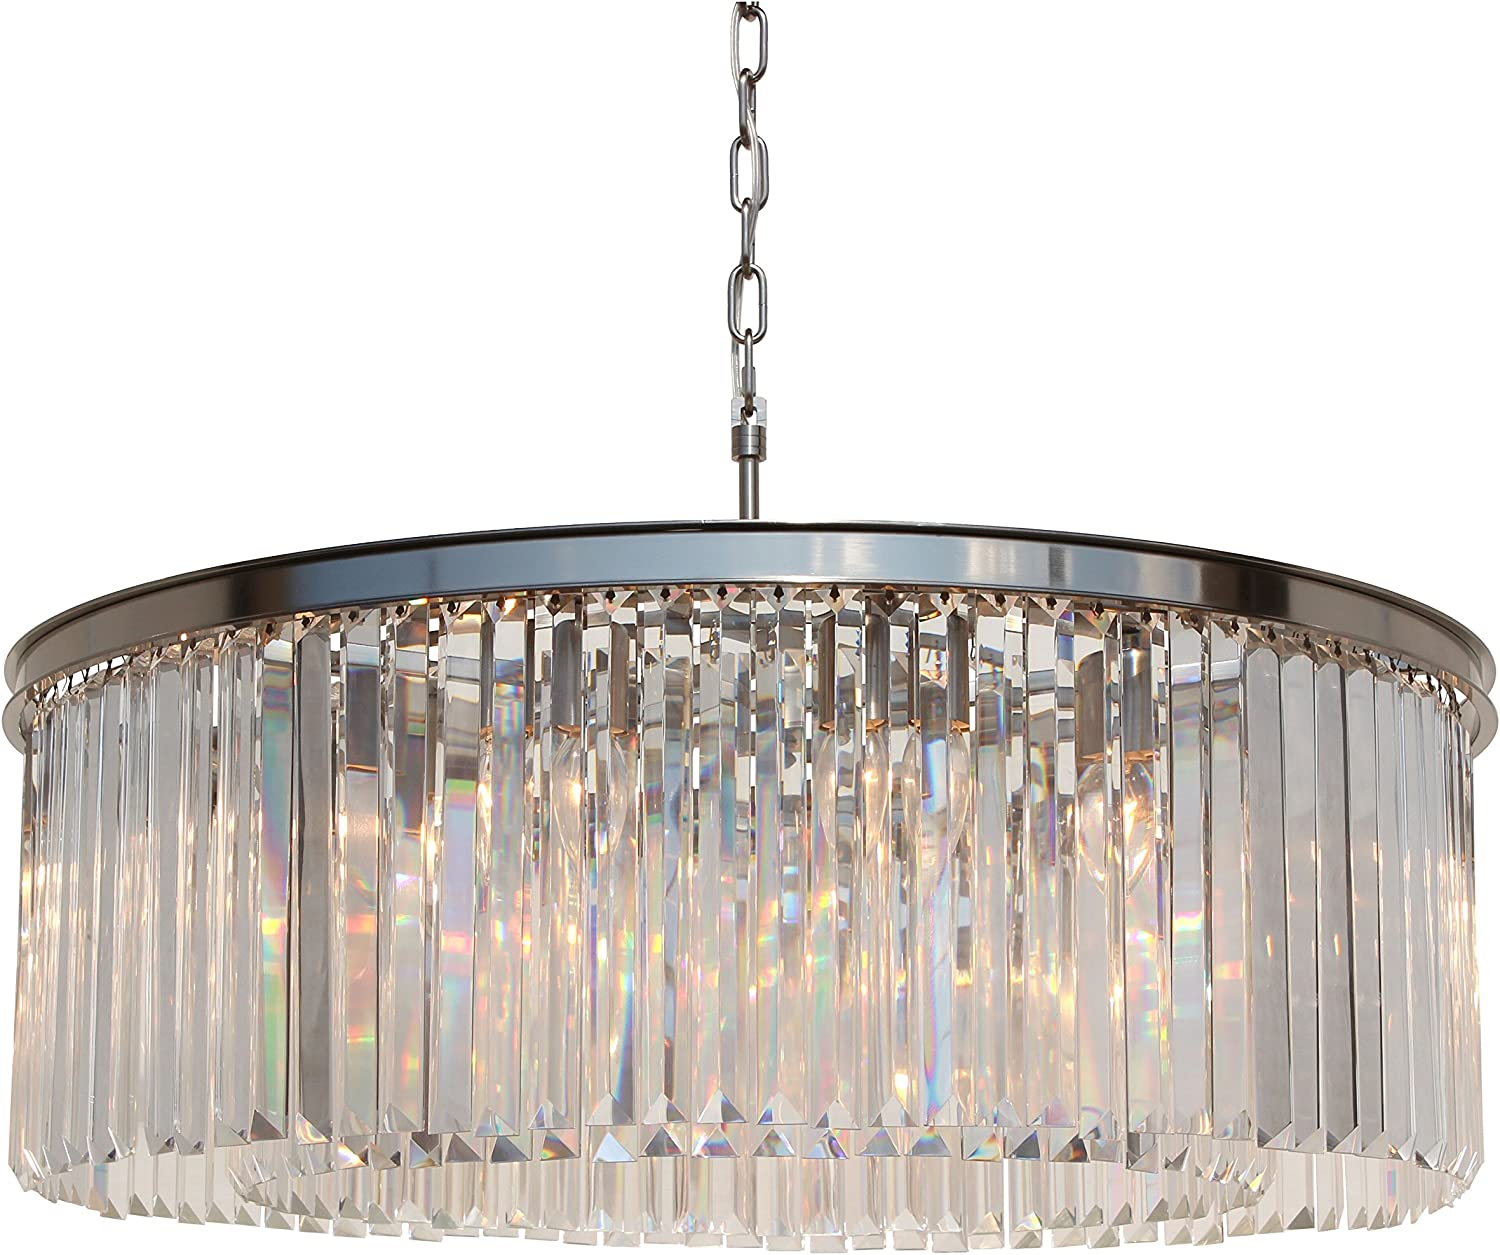 Replacement glass for the OURO lamp series small size